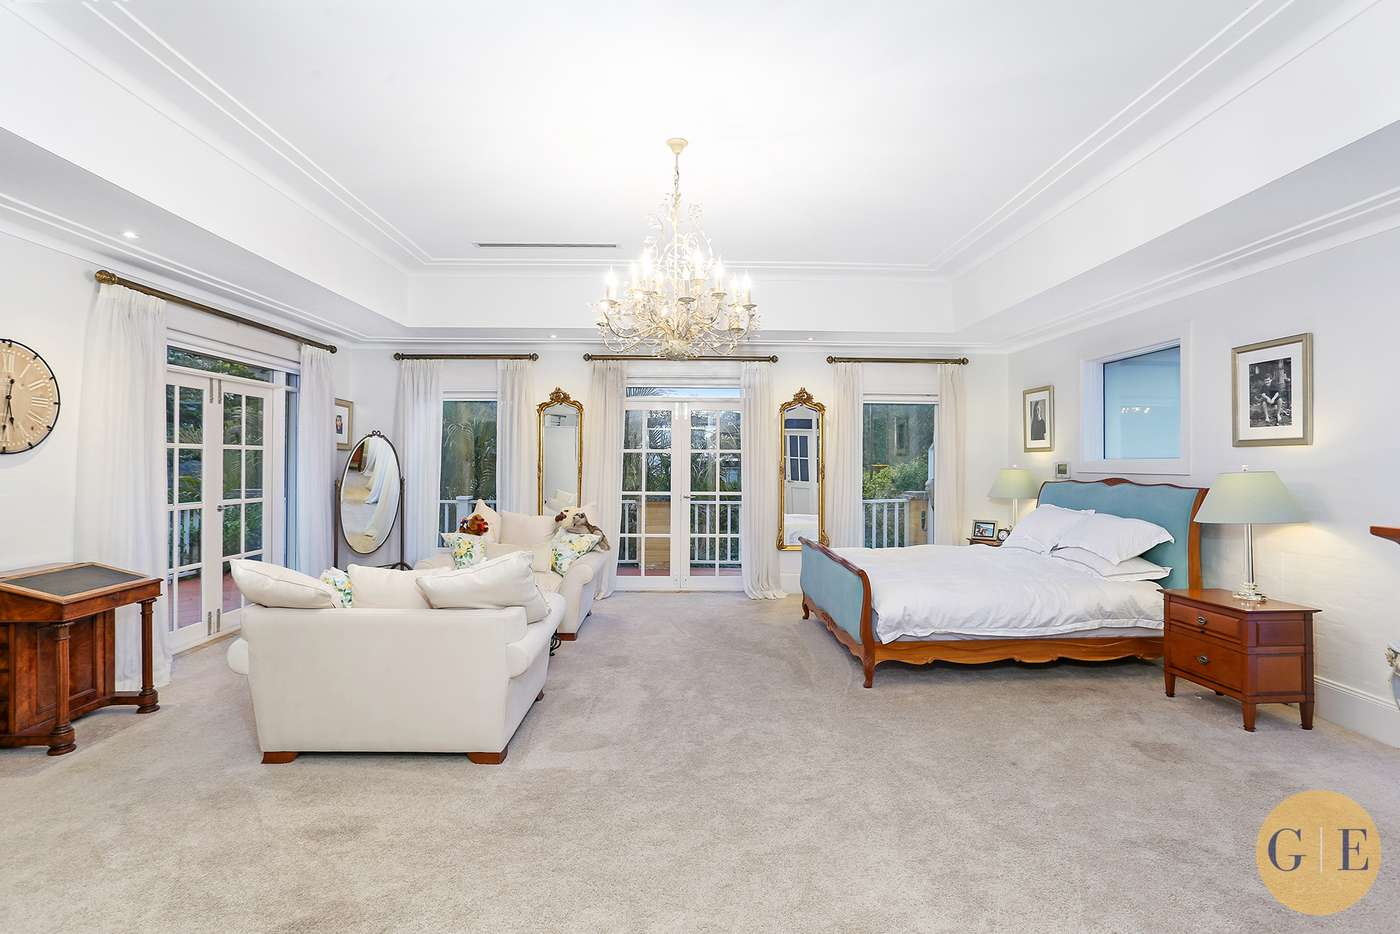 Fifth view of Homely house listing, 32-34 Barker Road, Strathfield NSW 2135